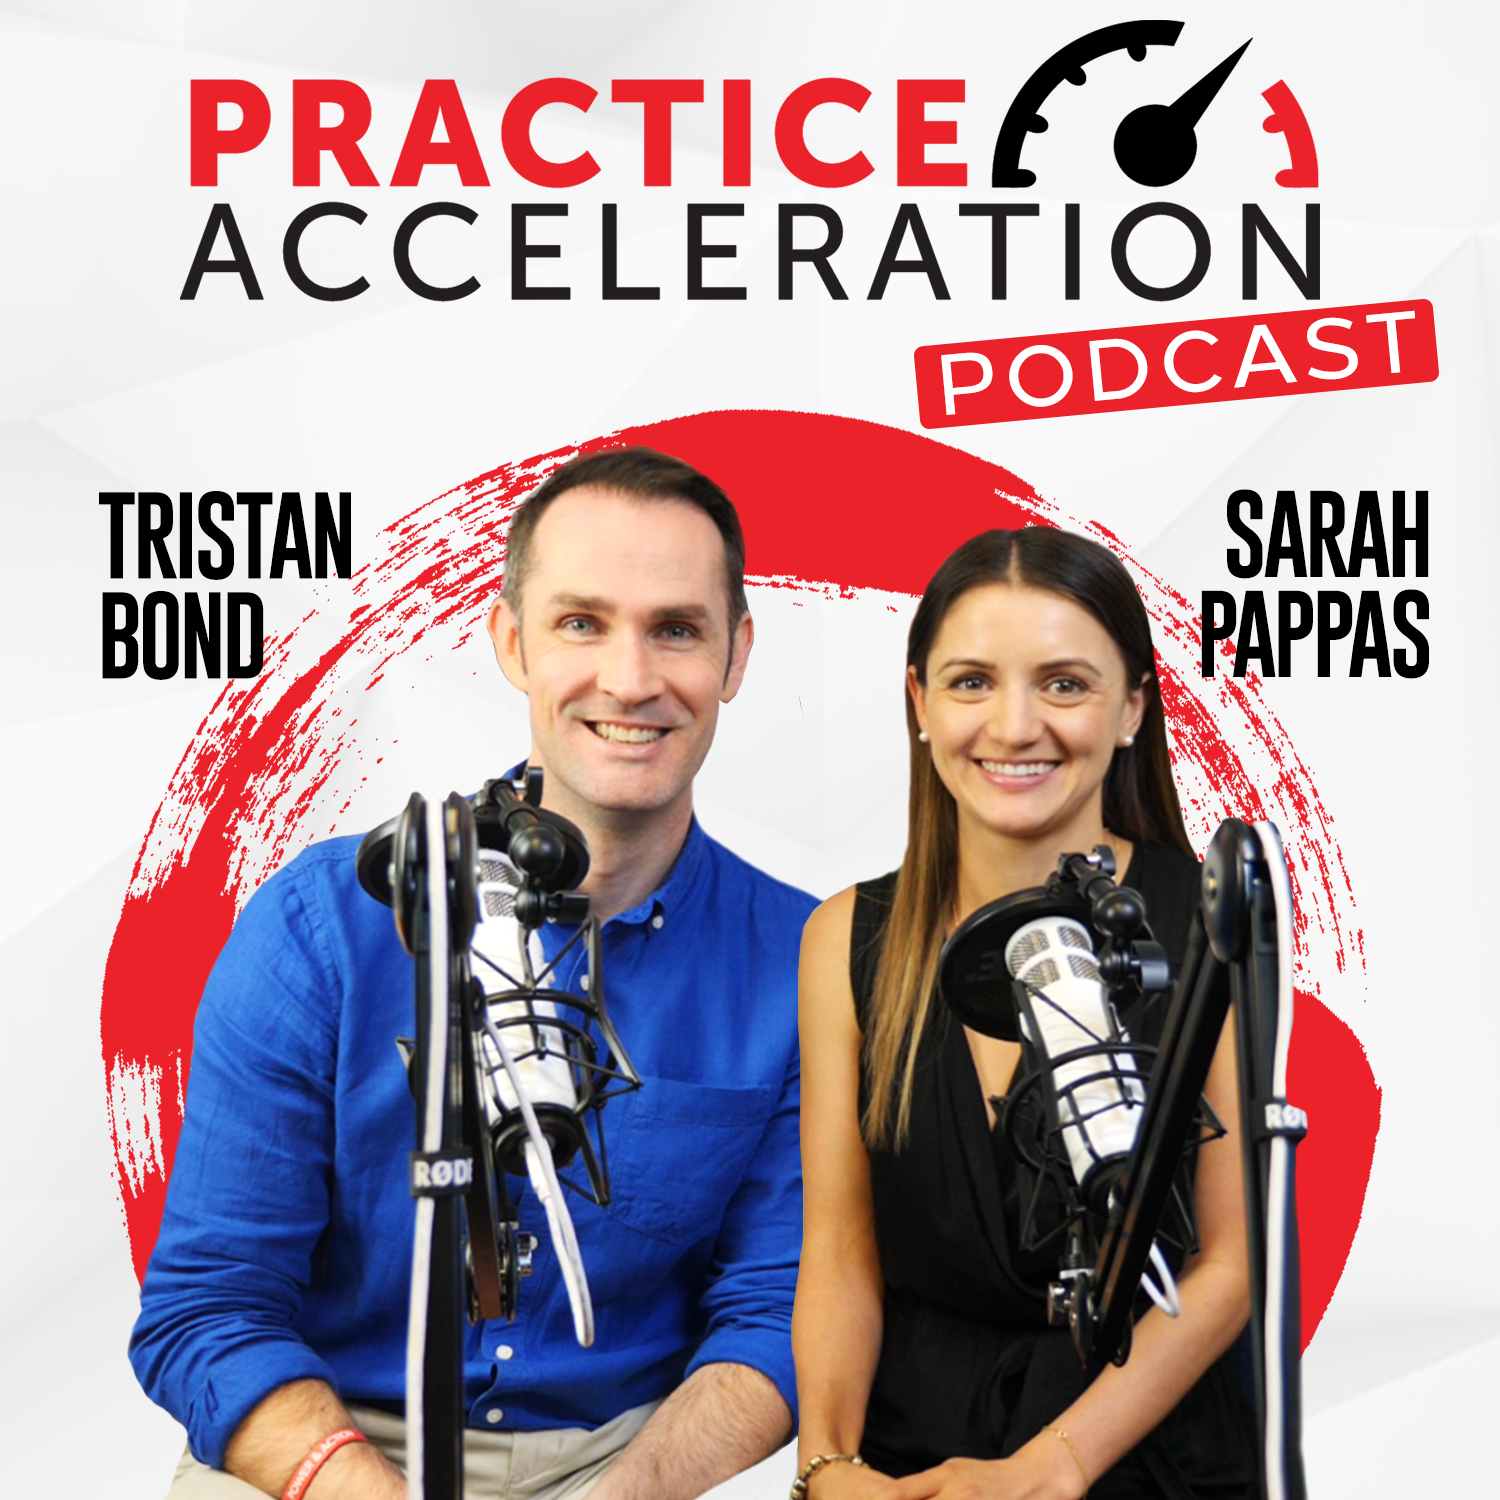 Practice Acceleration Podcast show art